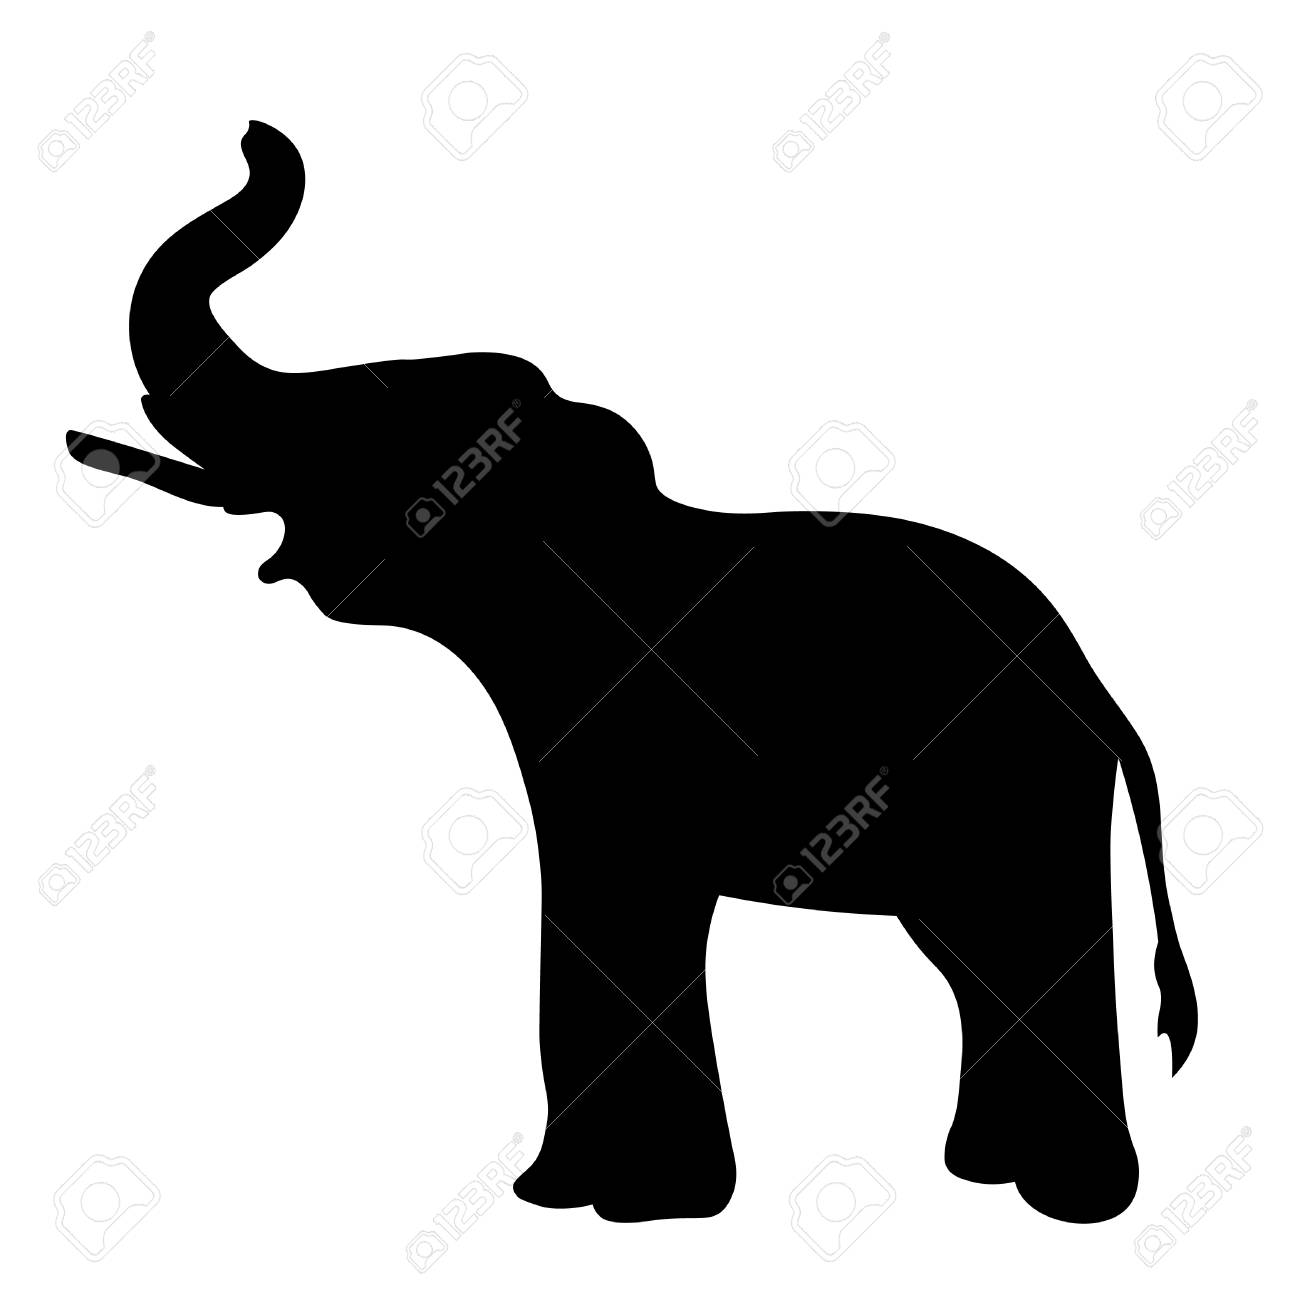 silhouette the elephant sideways up the trunk. vector illustration.